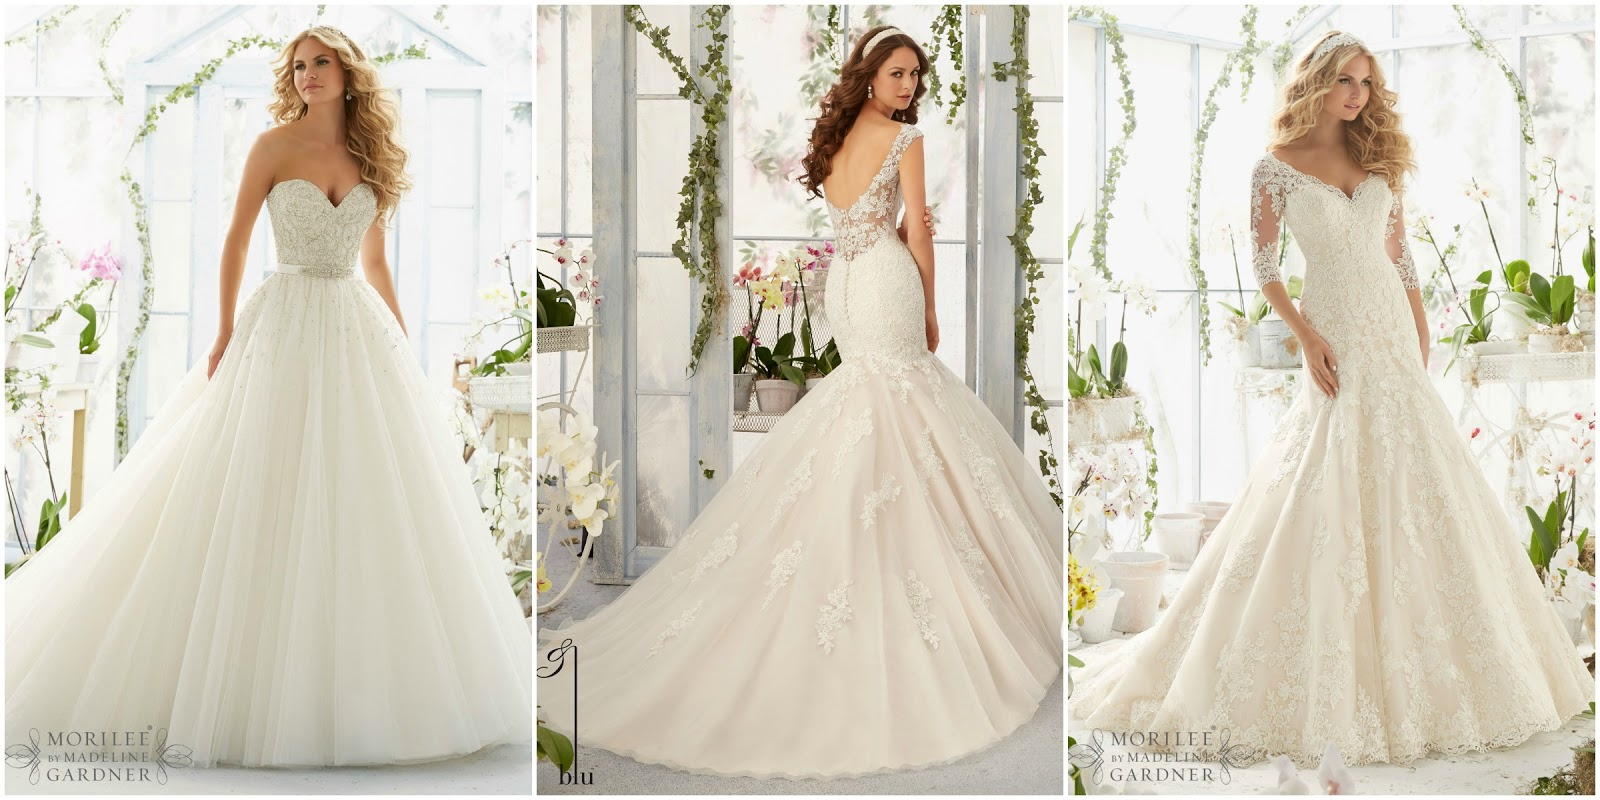 Affordable wedding dresses in miami fl mini bridal for Wedding dresses south florida